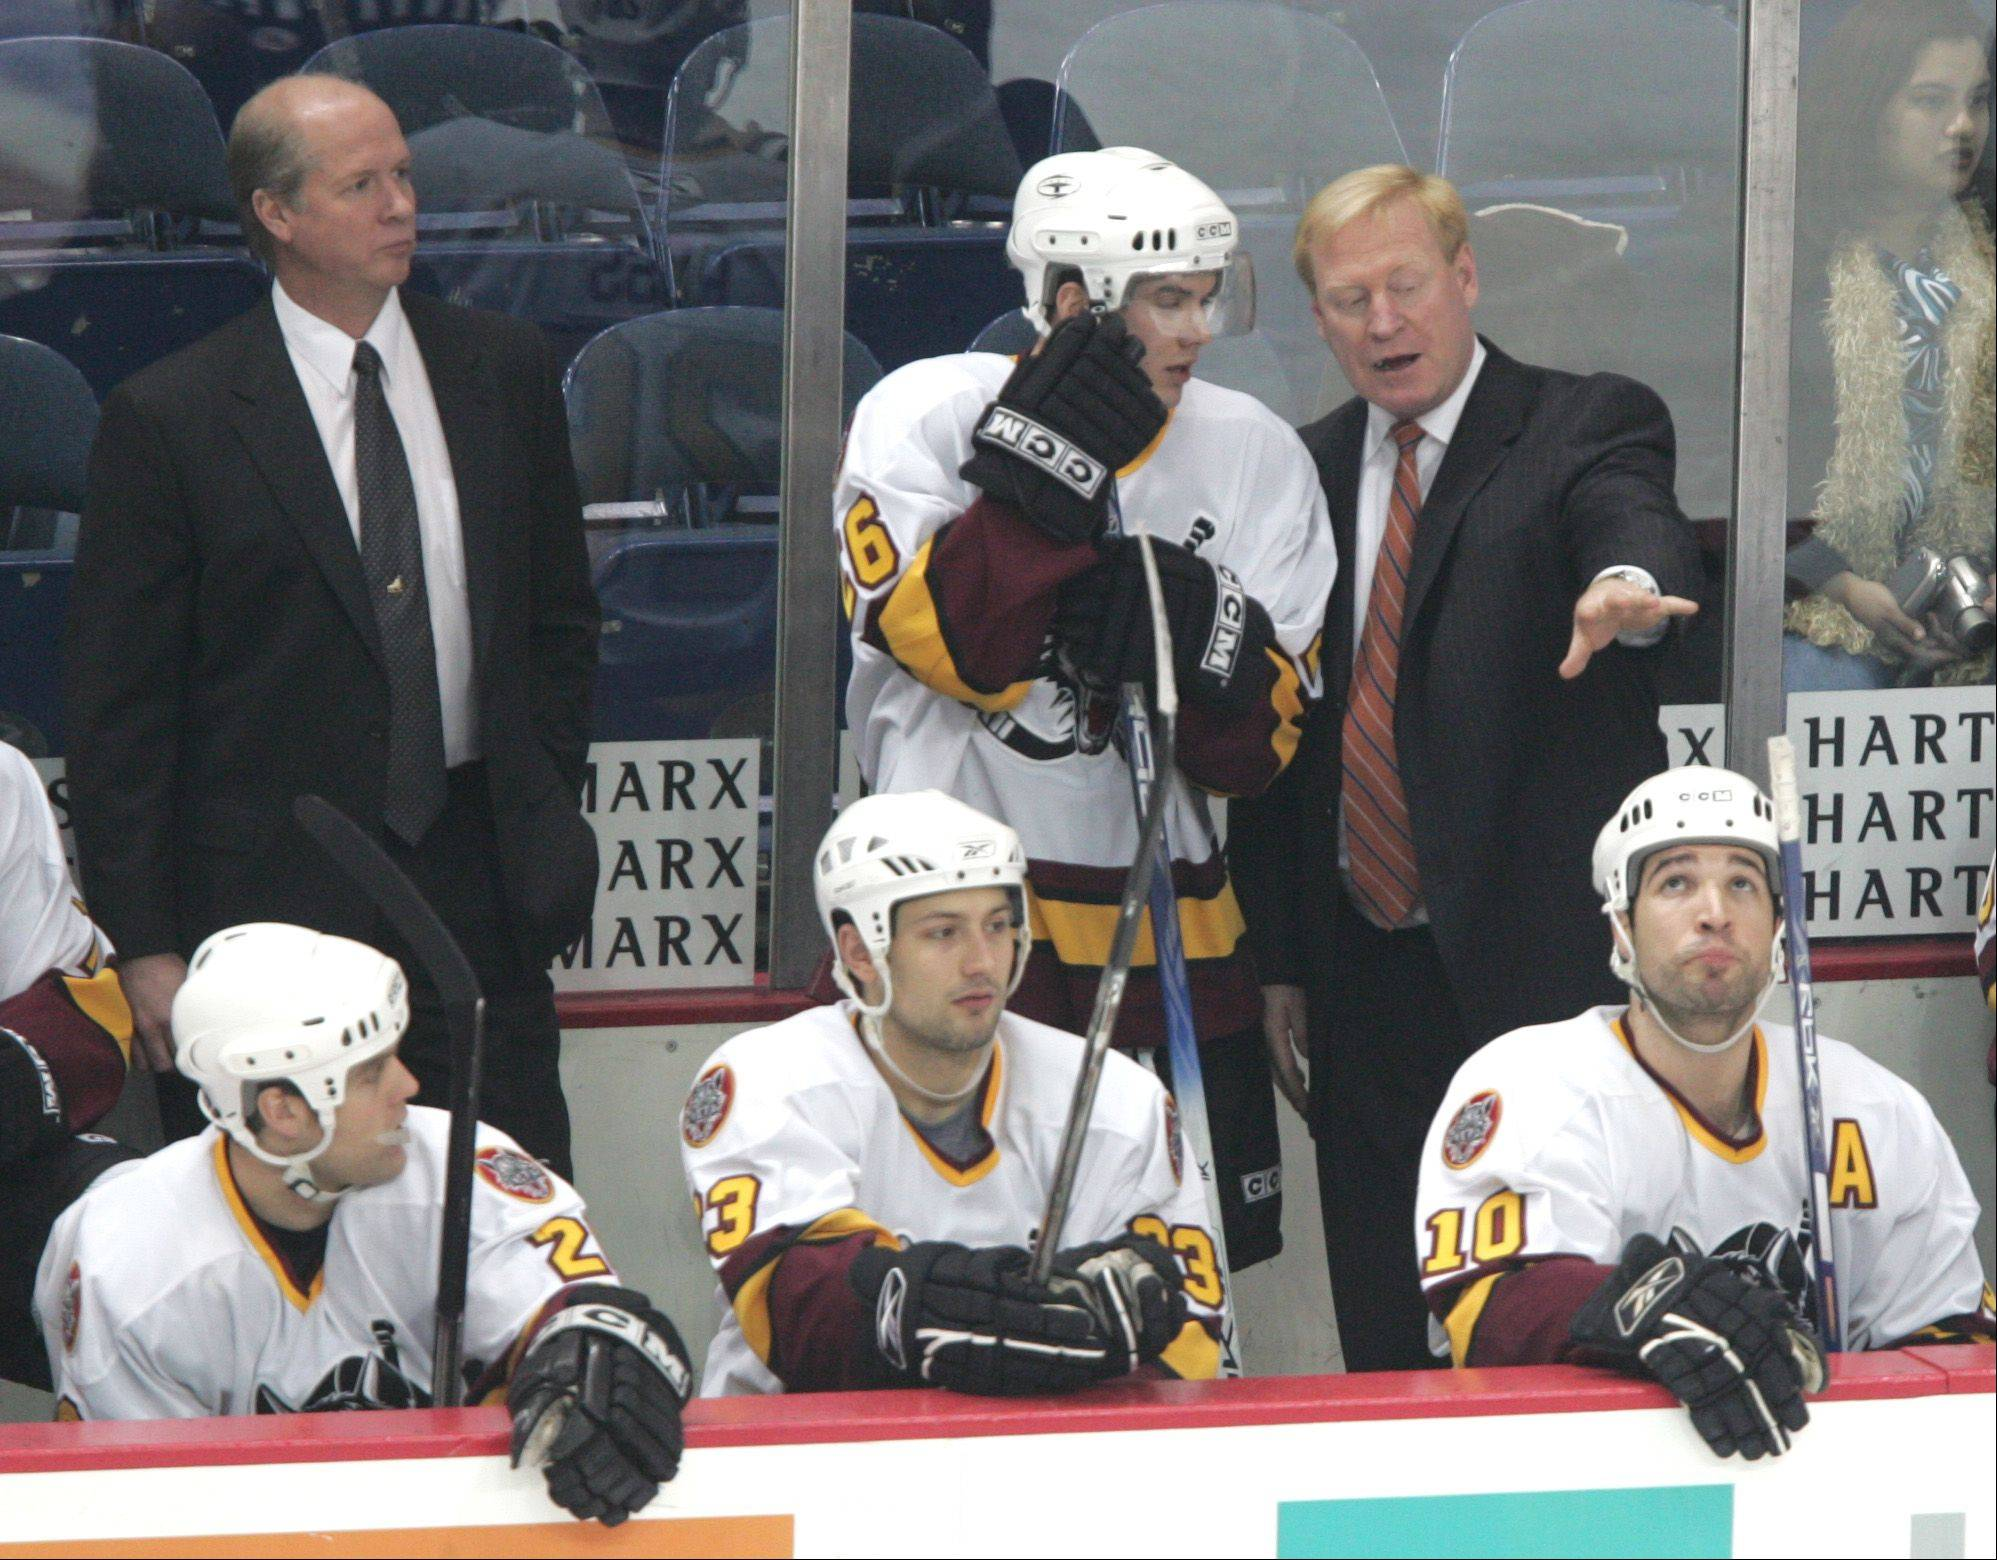 After five years away in the NHL, John Anderson, right, is back coaching the Chicago Wolves, the franchise he led to four titles. The Wolves will host their home op